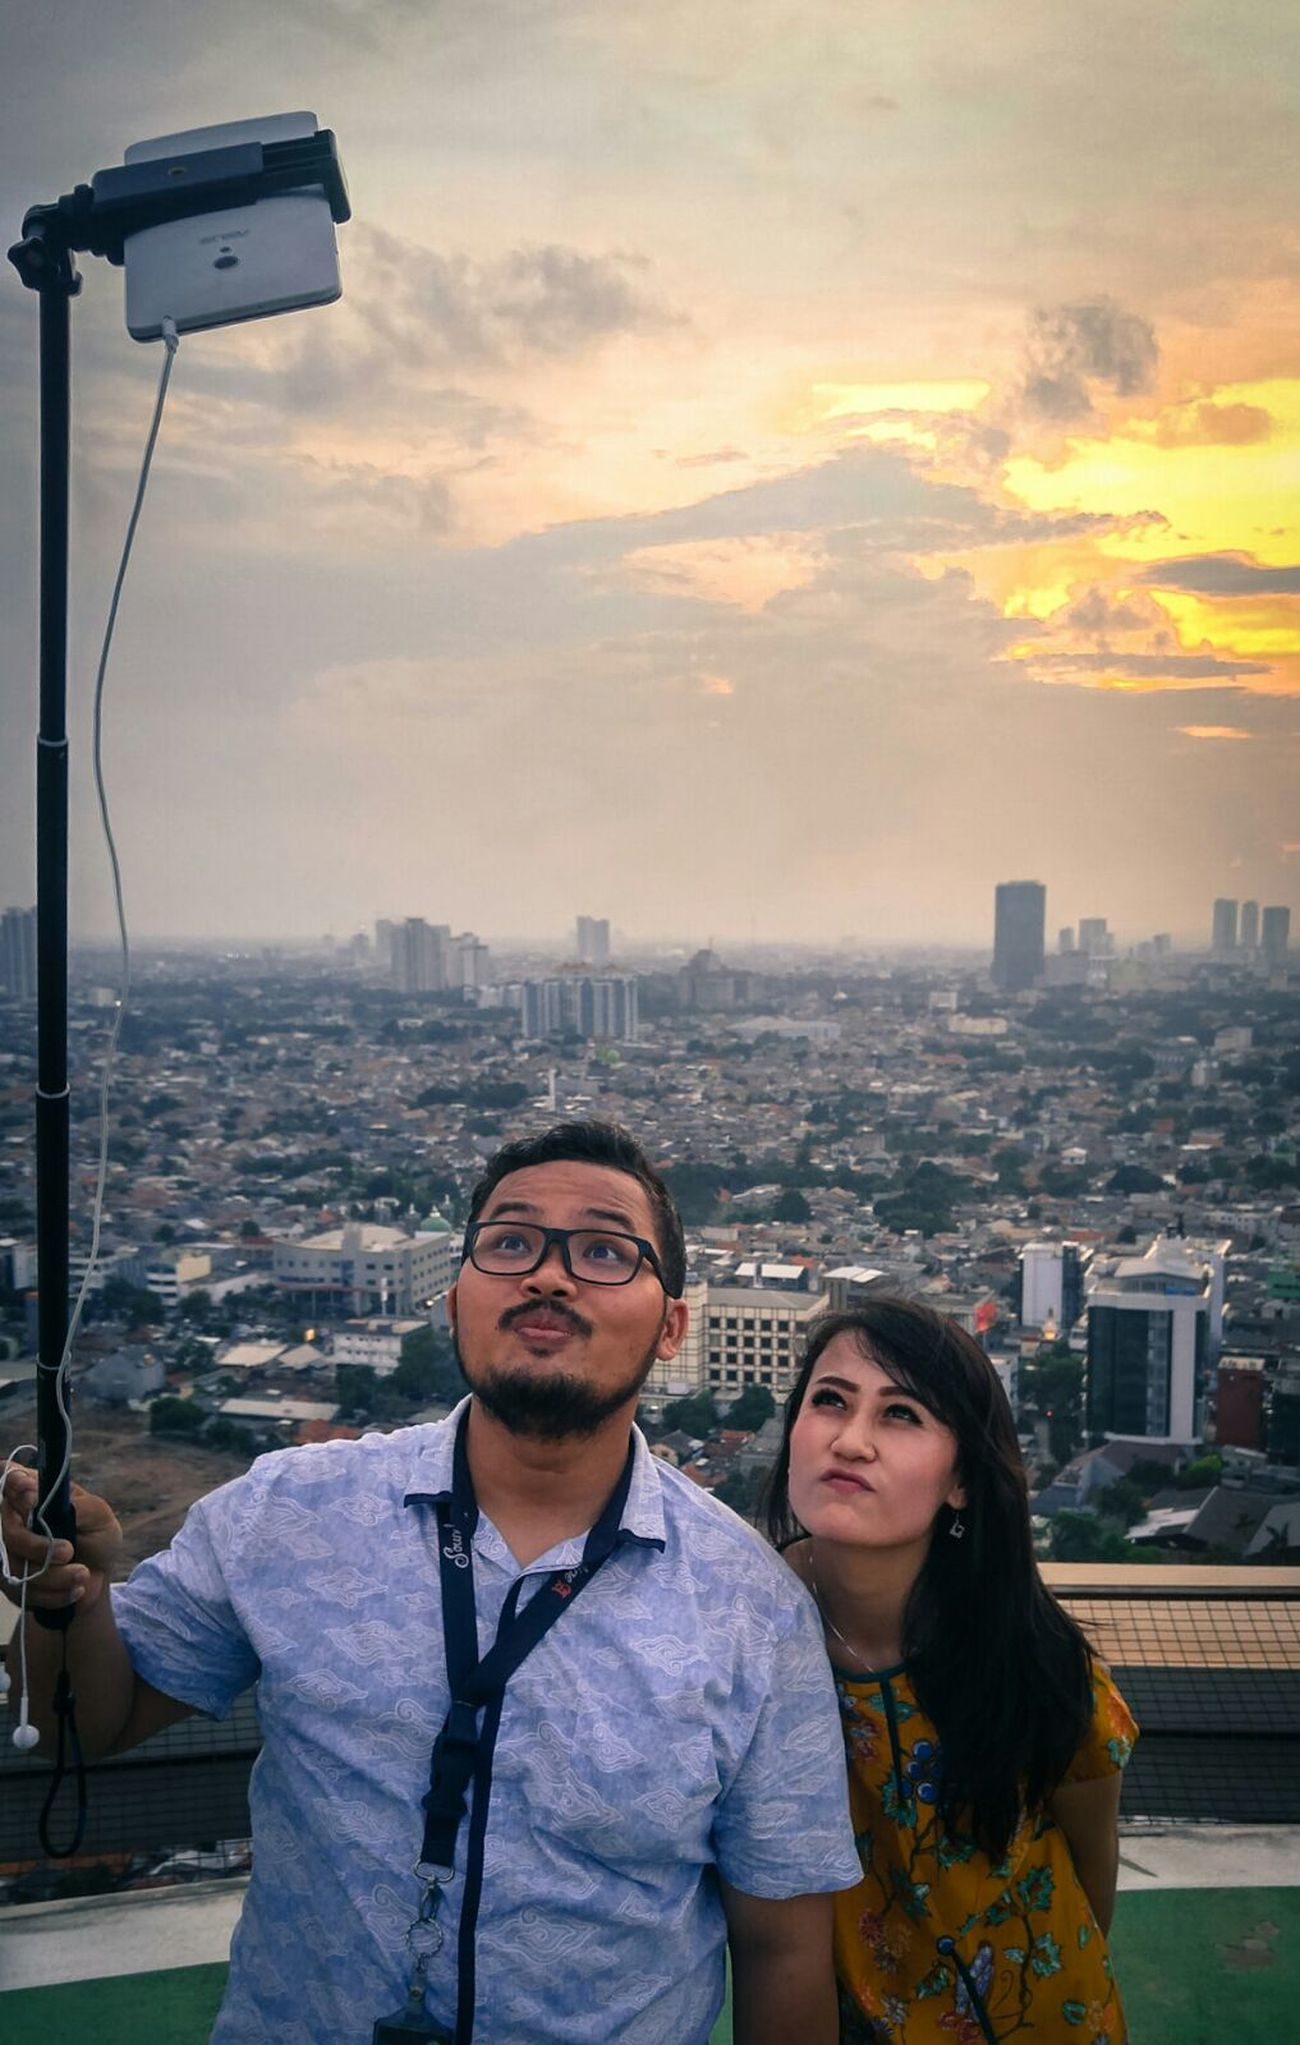 Capture the moment.. Selfie Portrait Menarabankmega INDONESIA Jakarta Modelgirl From 27th Floor Rooftop